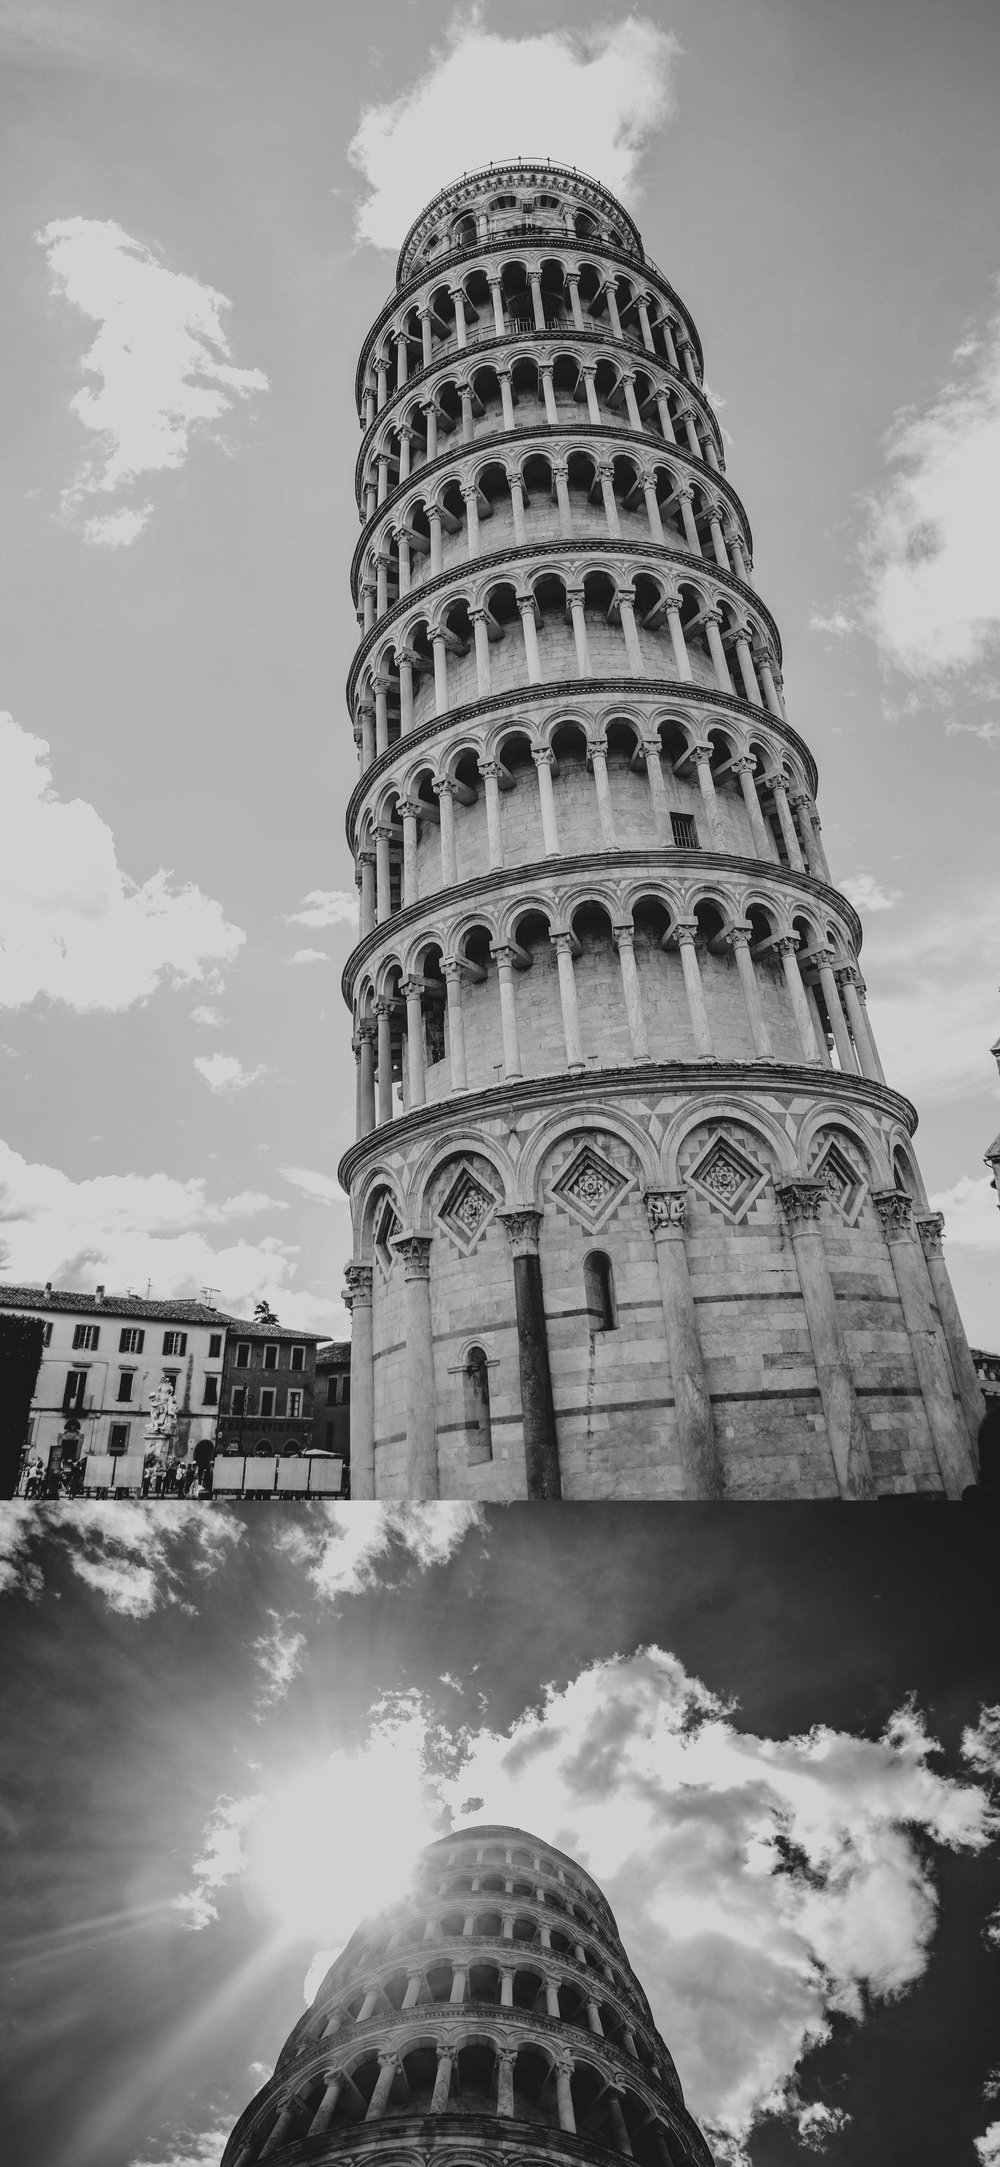 Leaning Tower of Pisa Essex Documentary Travel Wedding Photographer